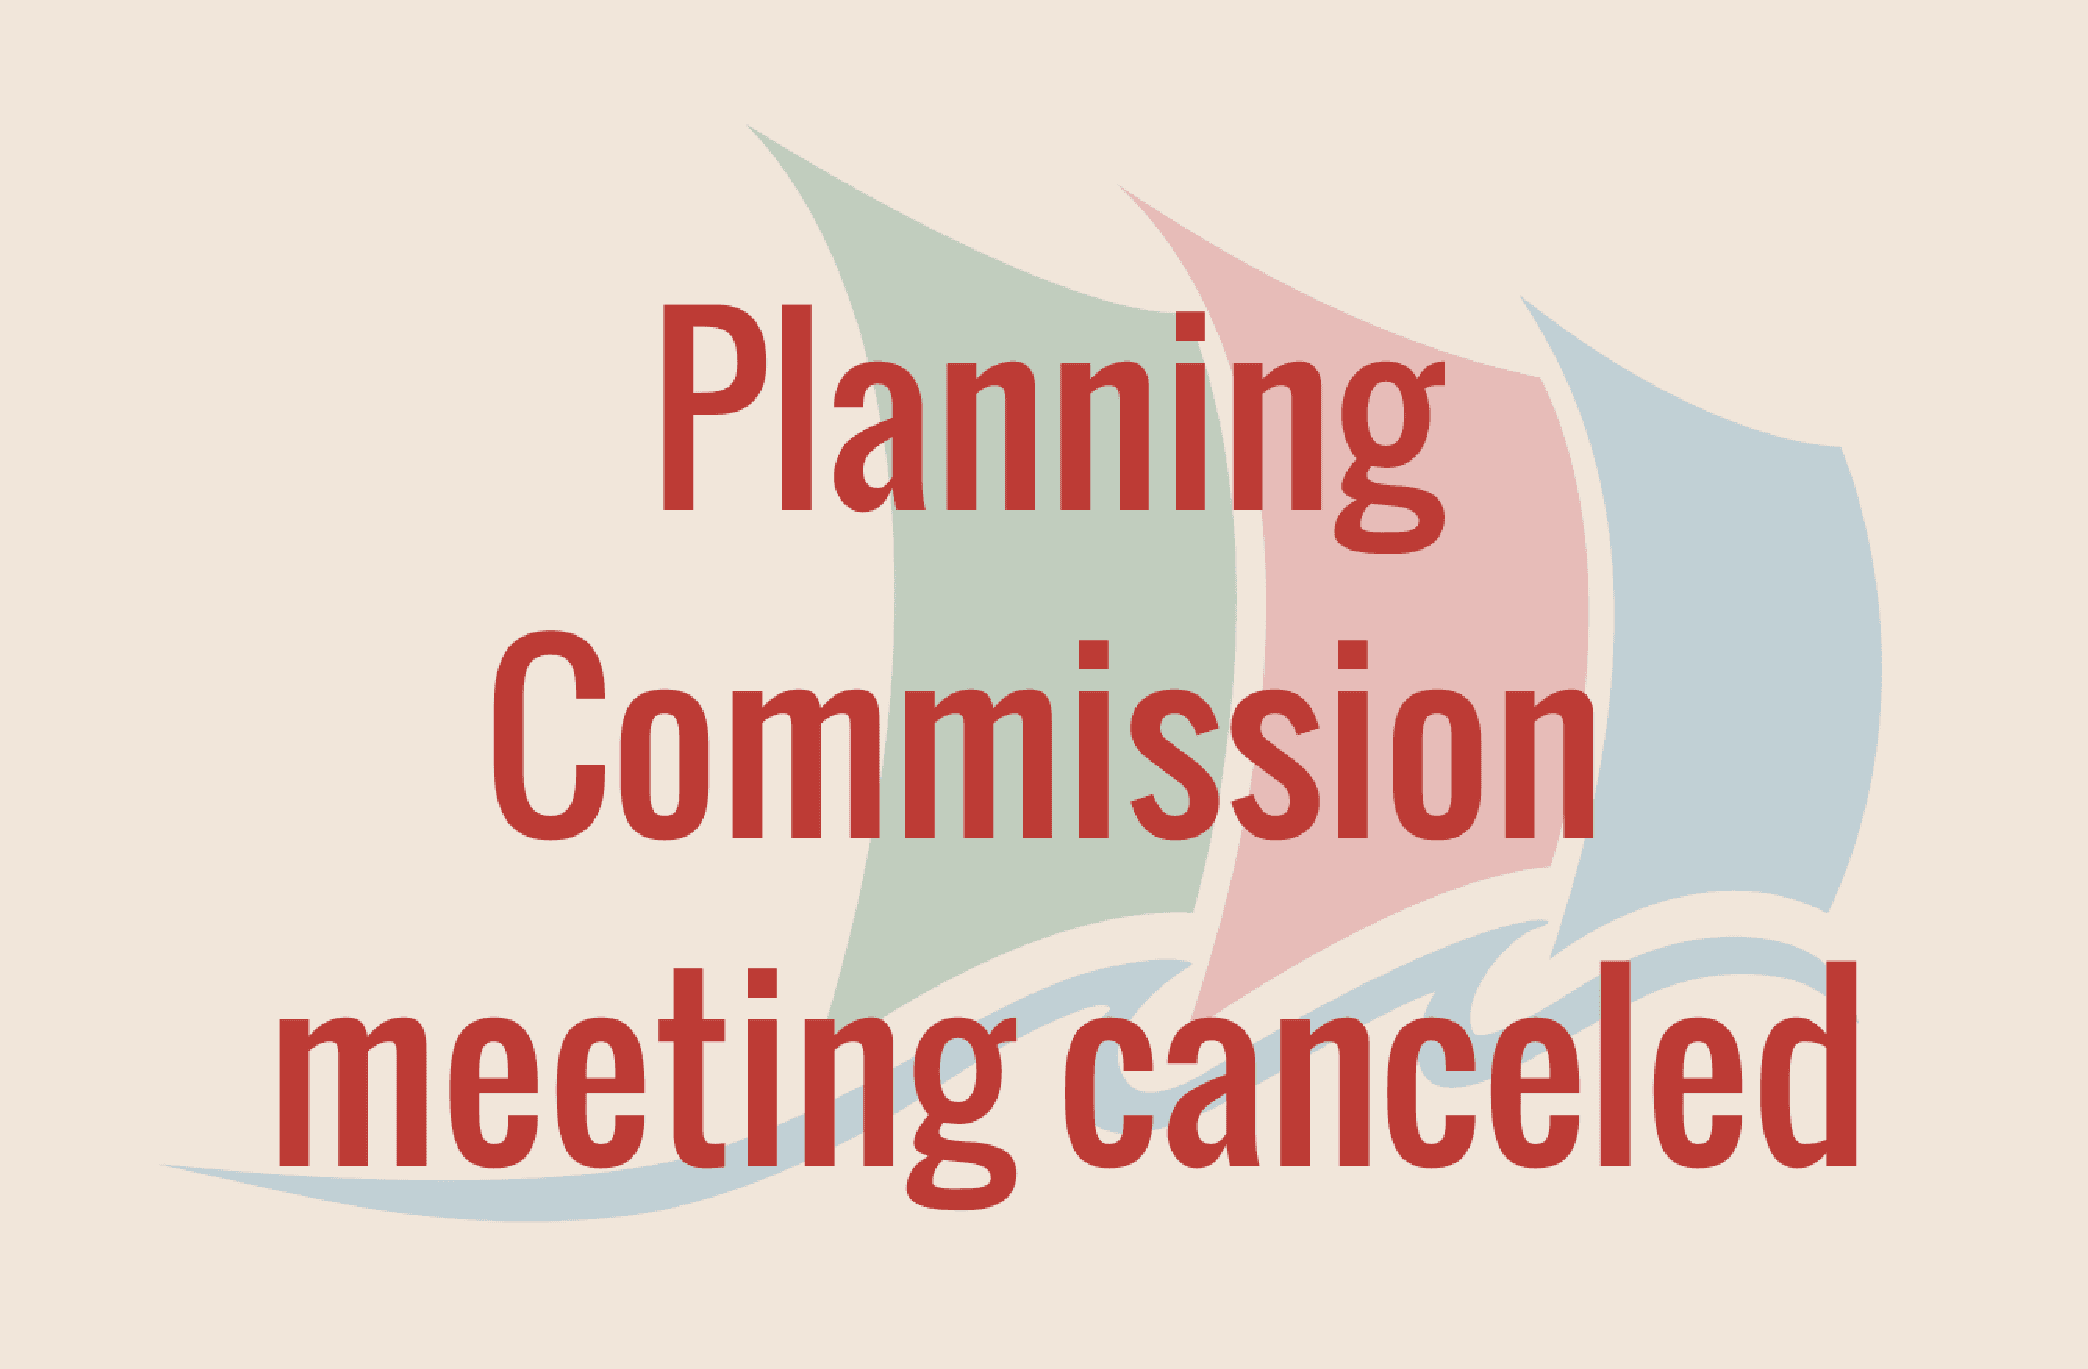 Planning Commission meeting canceled